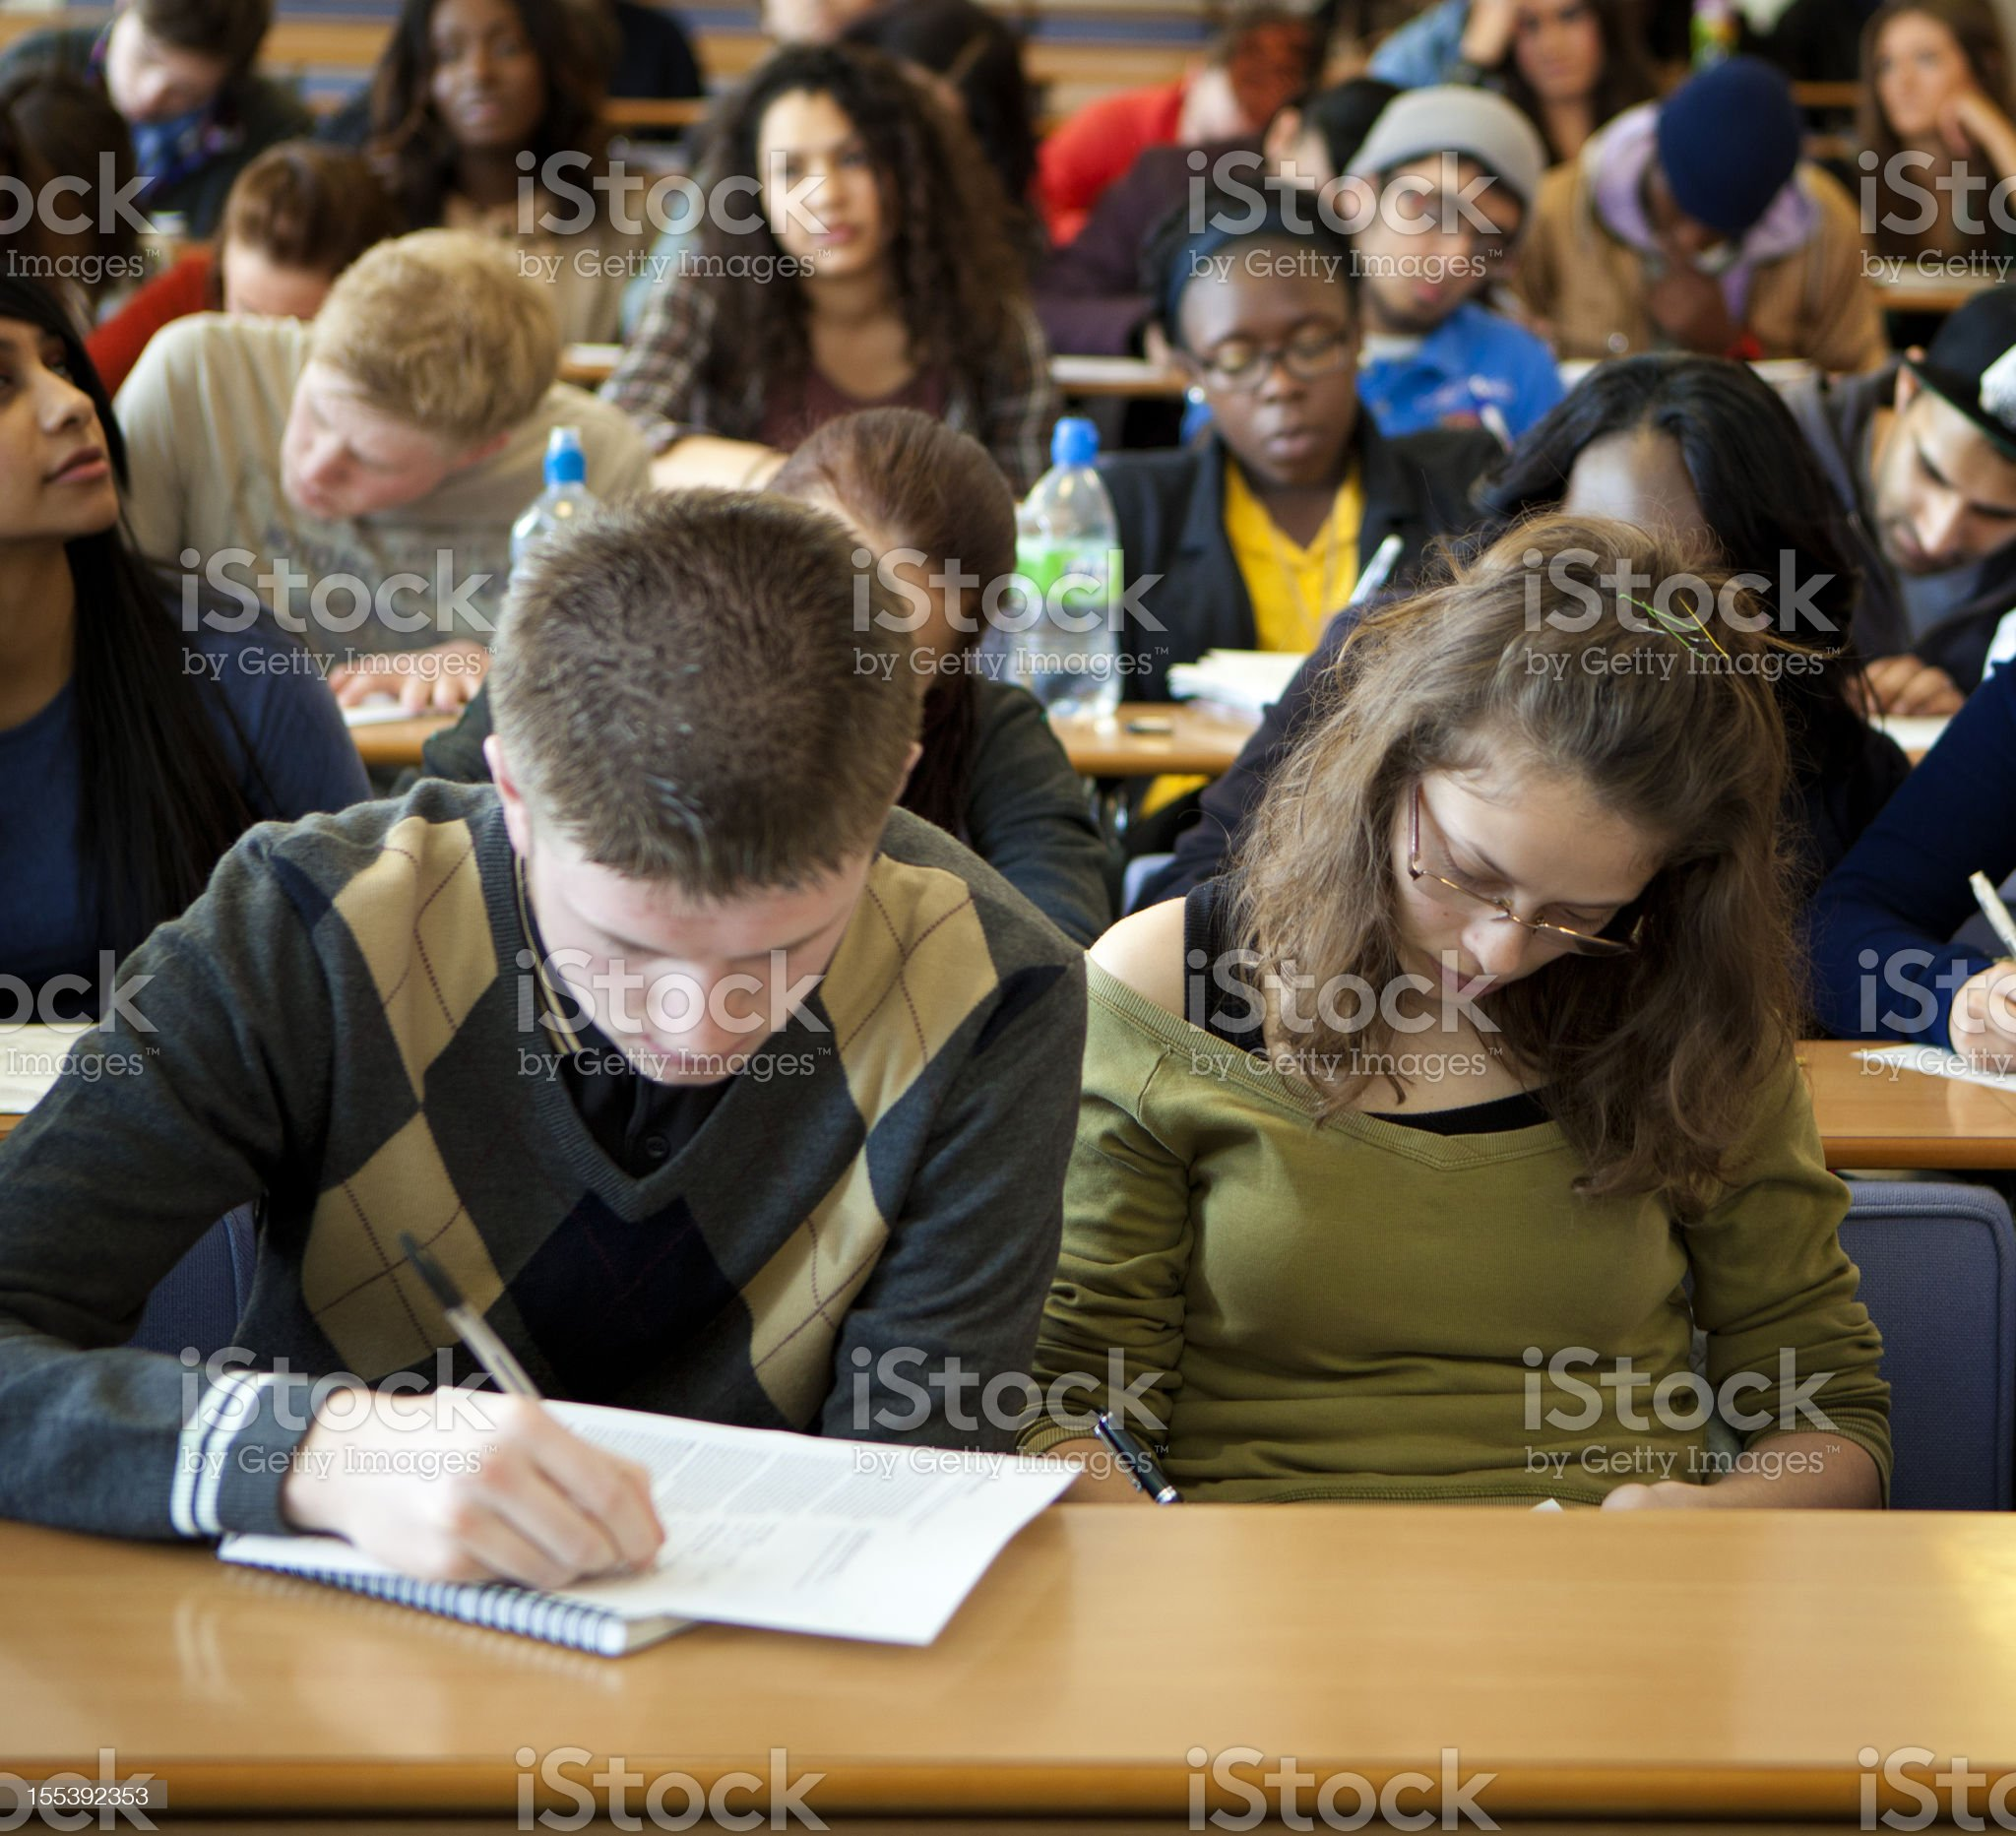 University student in lecture room. royalty-free stock photo